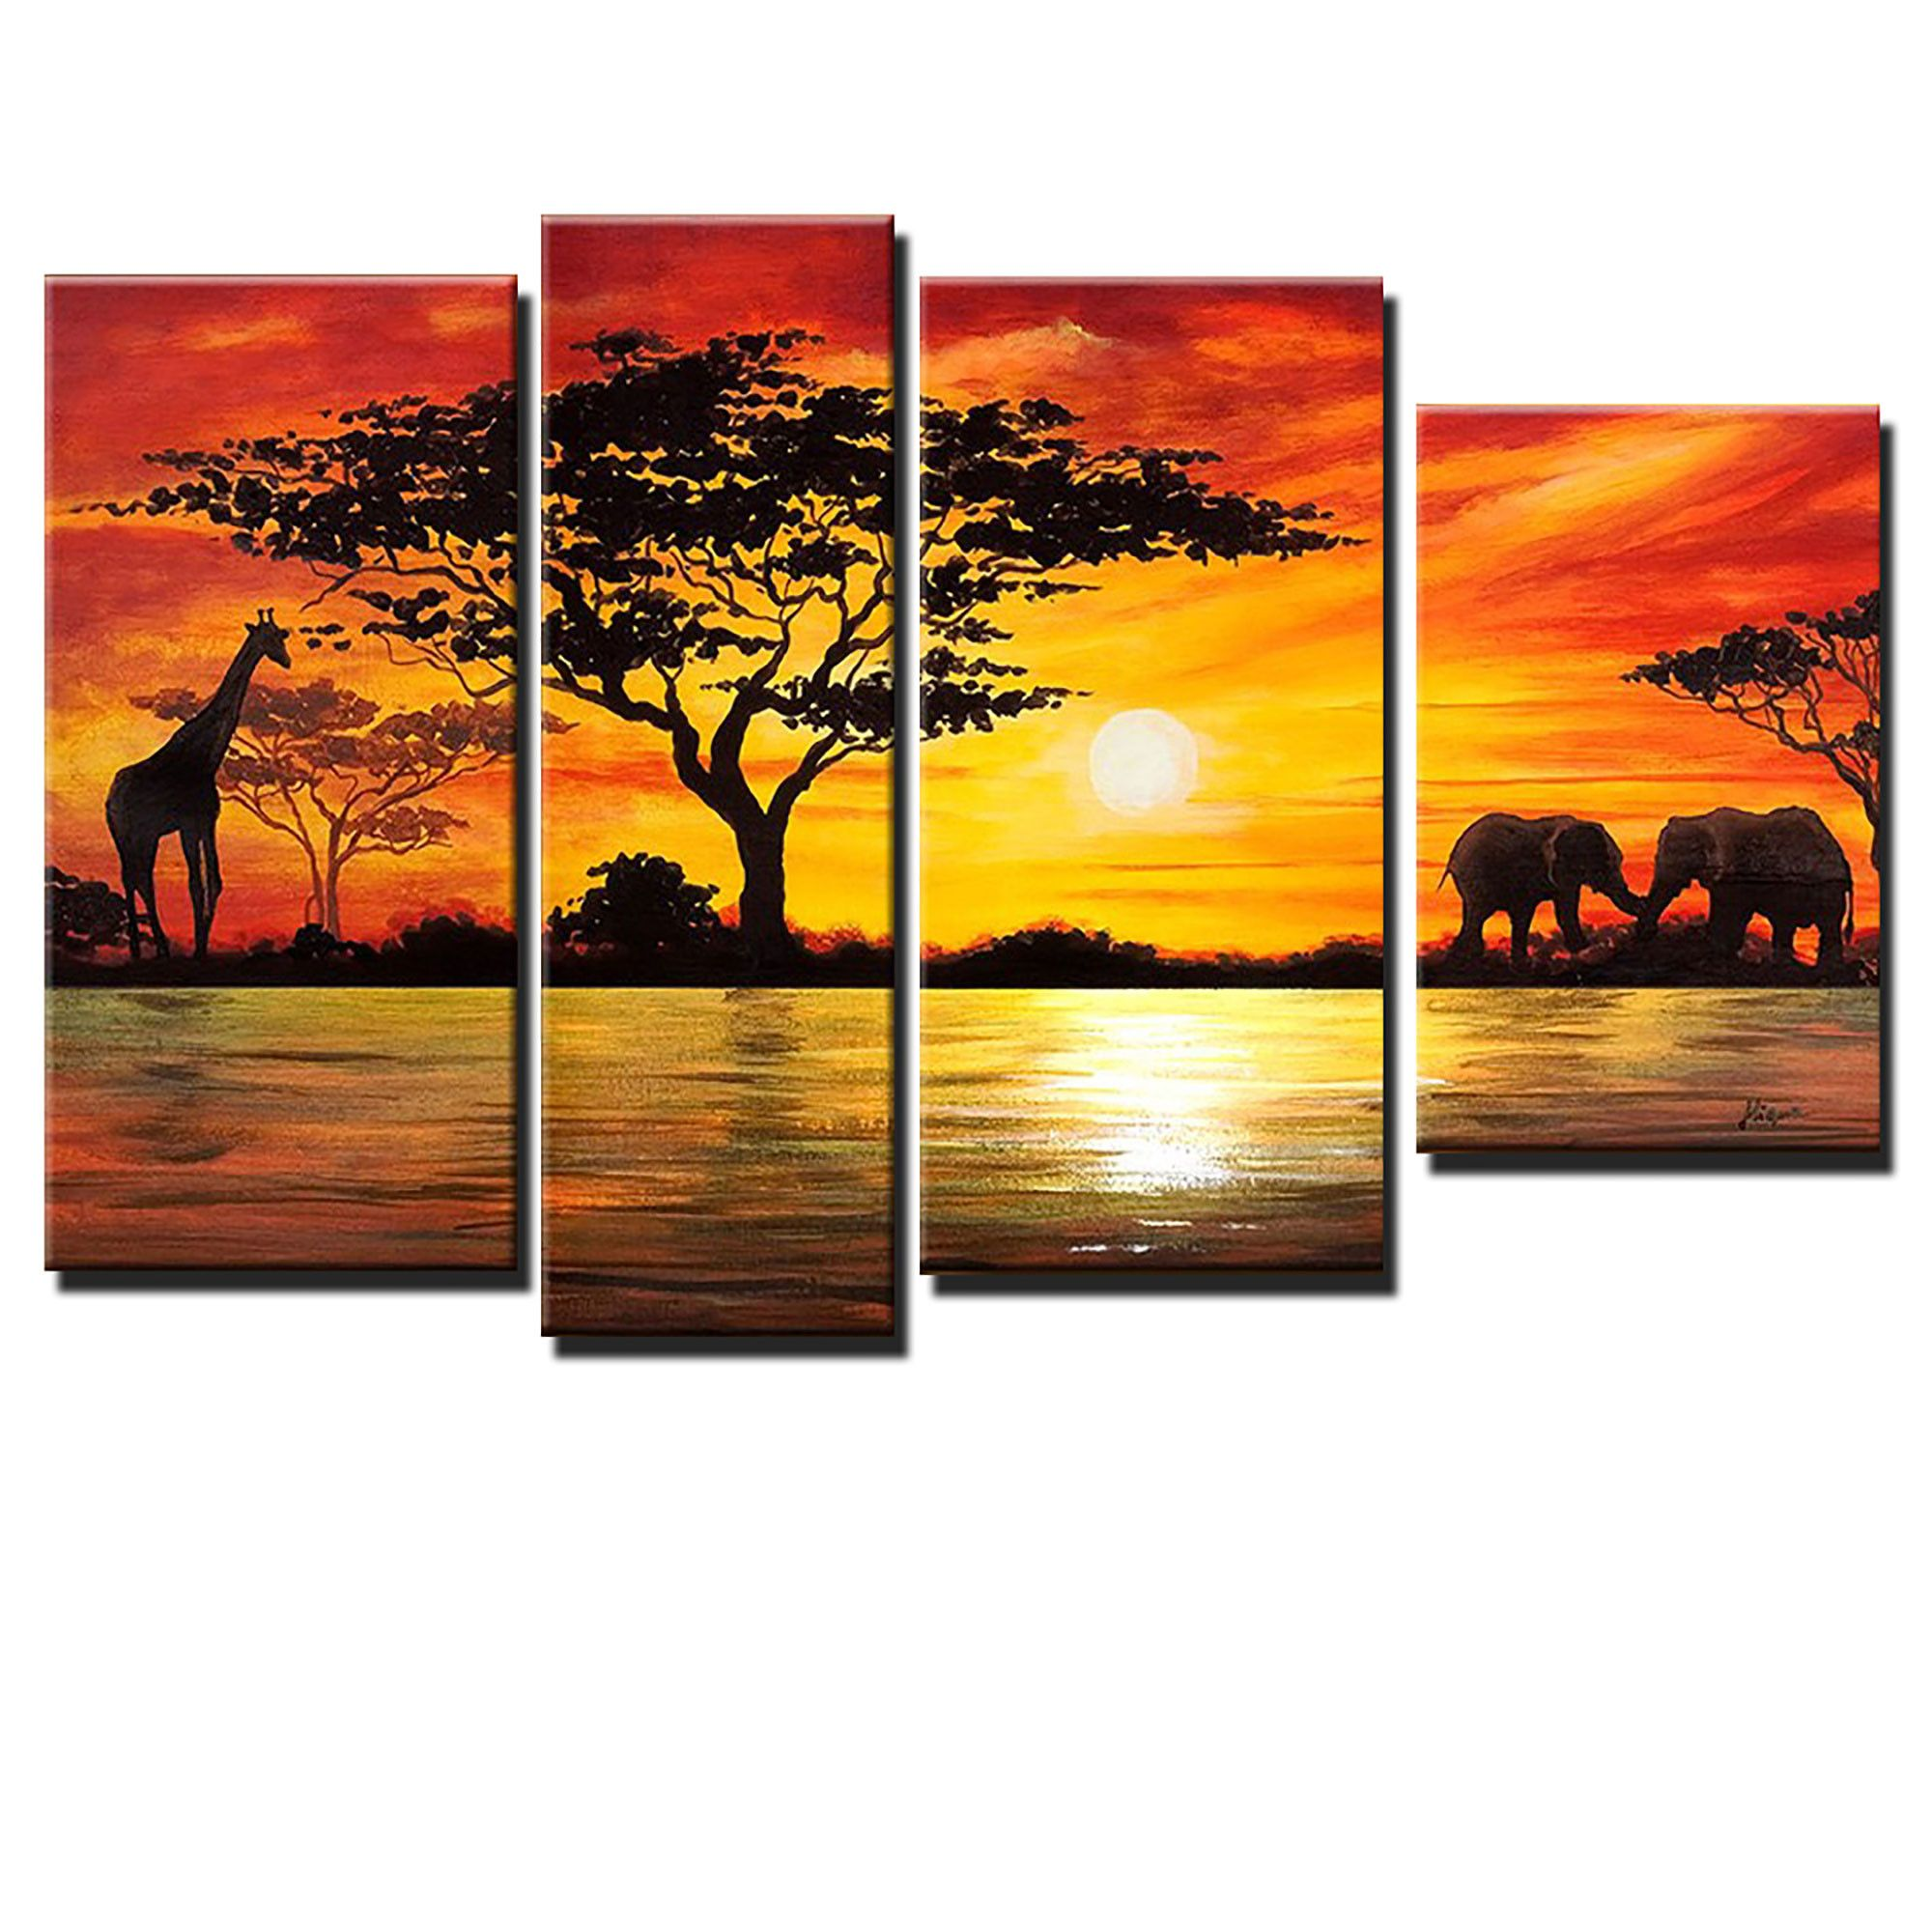 Beauty of Africa Landscape Canvas Wall Art Oil Painting | Lovely ...